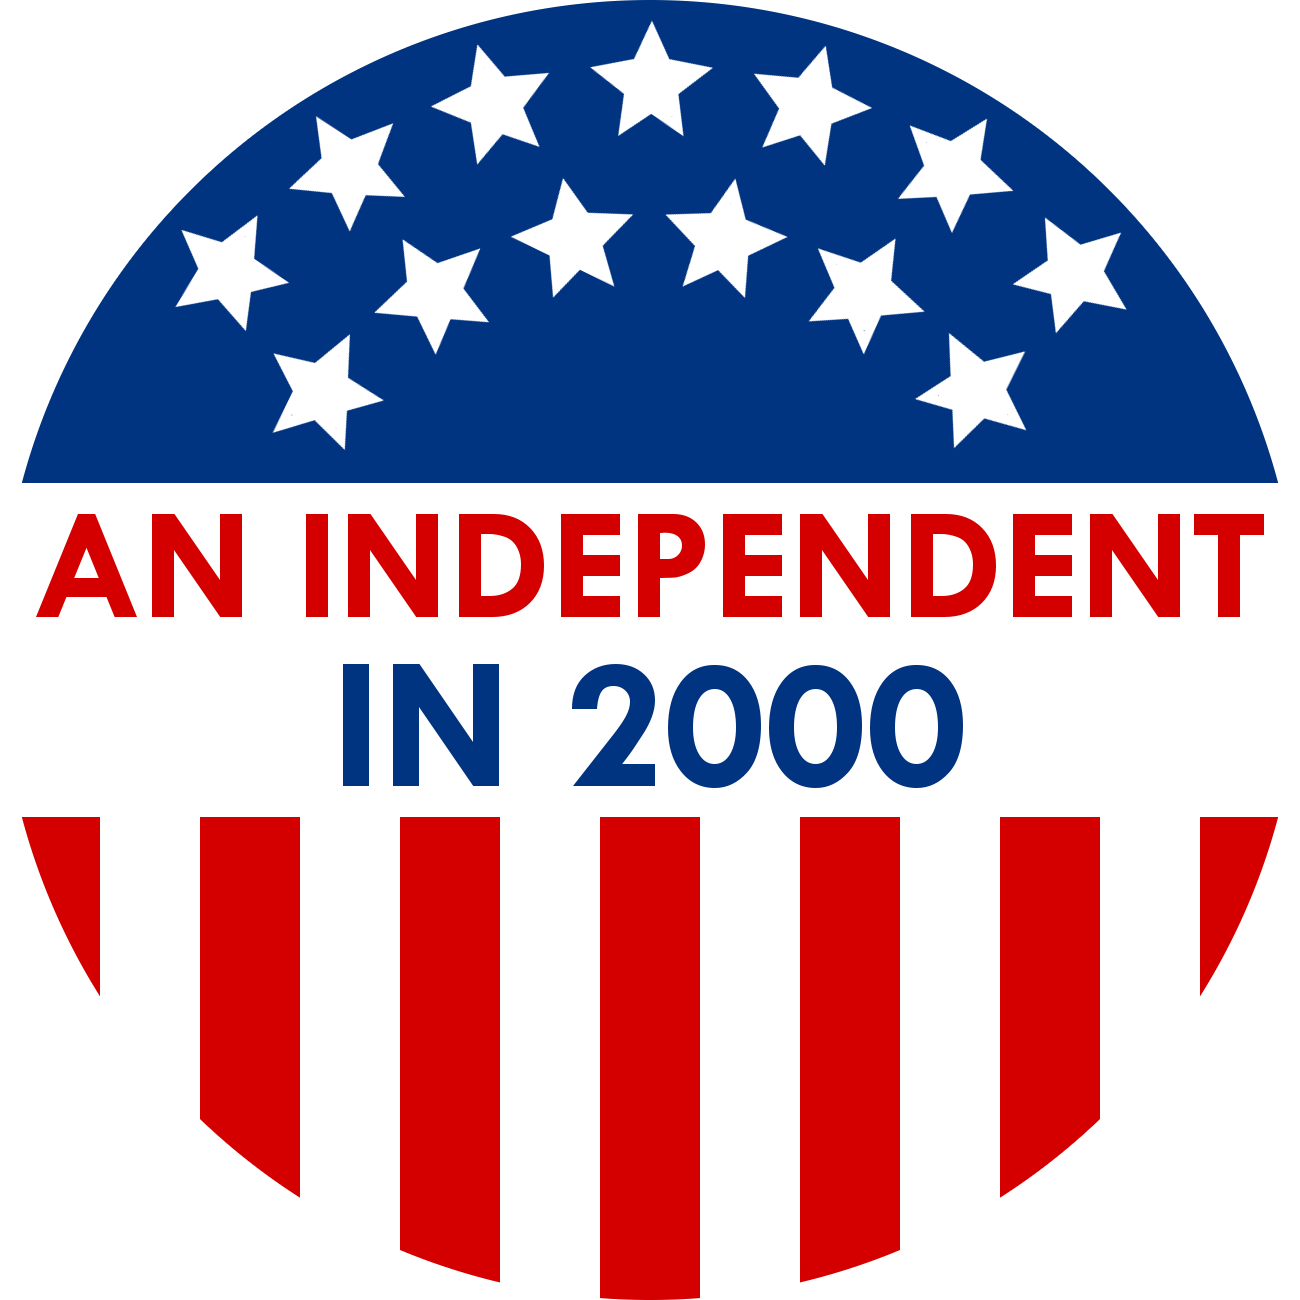 An Independent in 2000-States